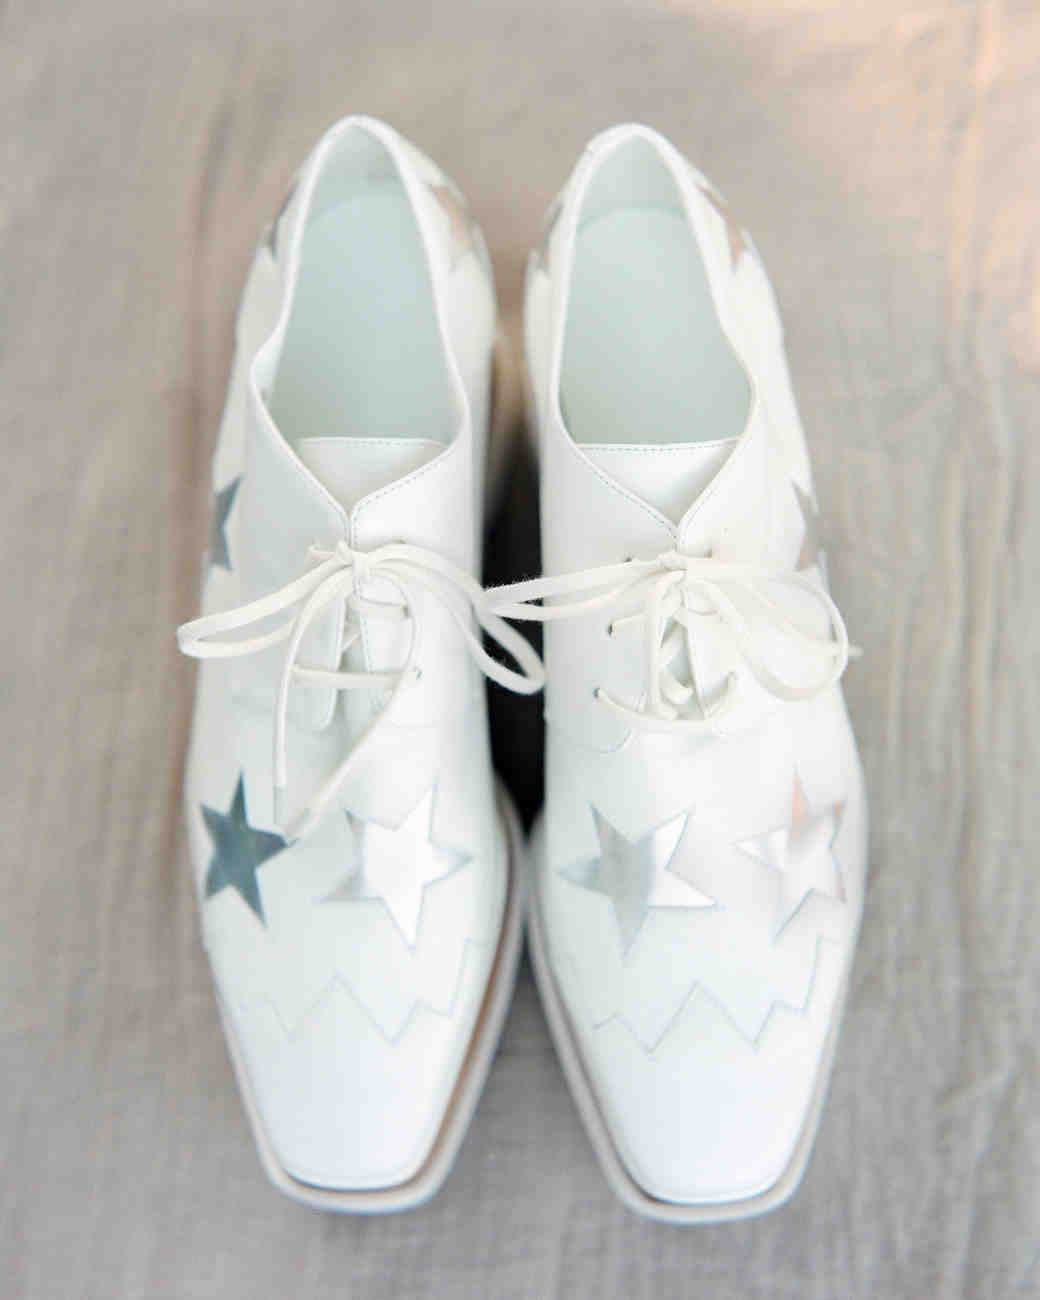 Starry Wedding Shoes